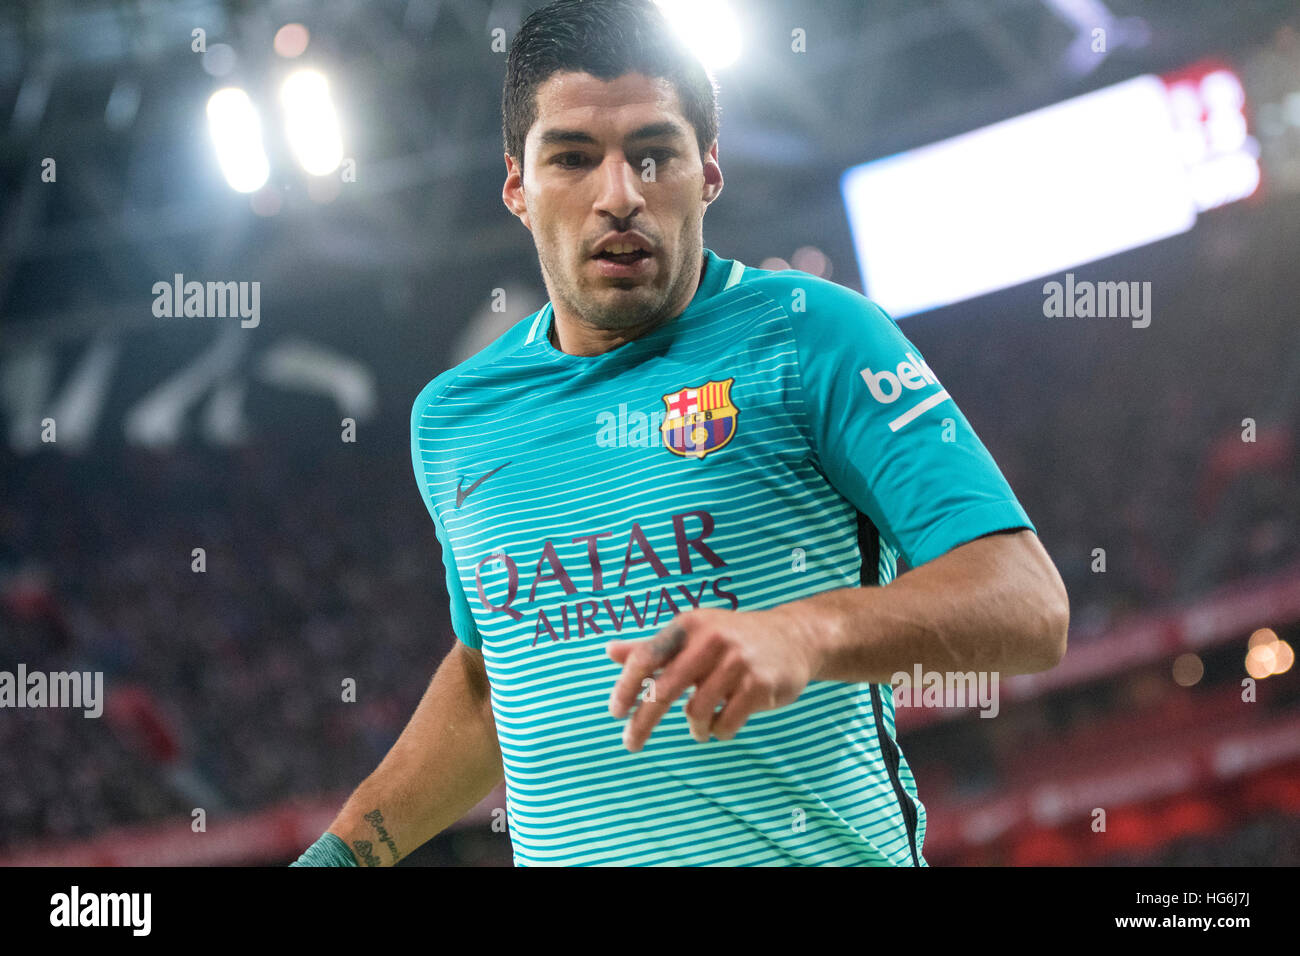 Bilbao, Spain. 5th January, 2017. Luis Suarez (Forward, FC Barcelona) during the football match of Spanish King's - Stock Image